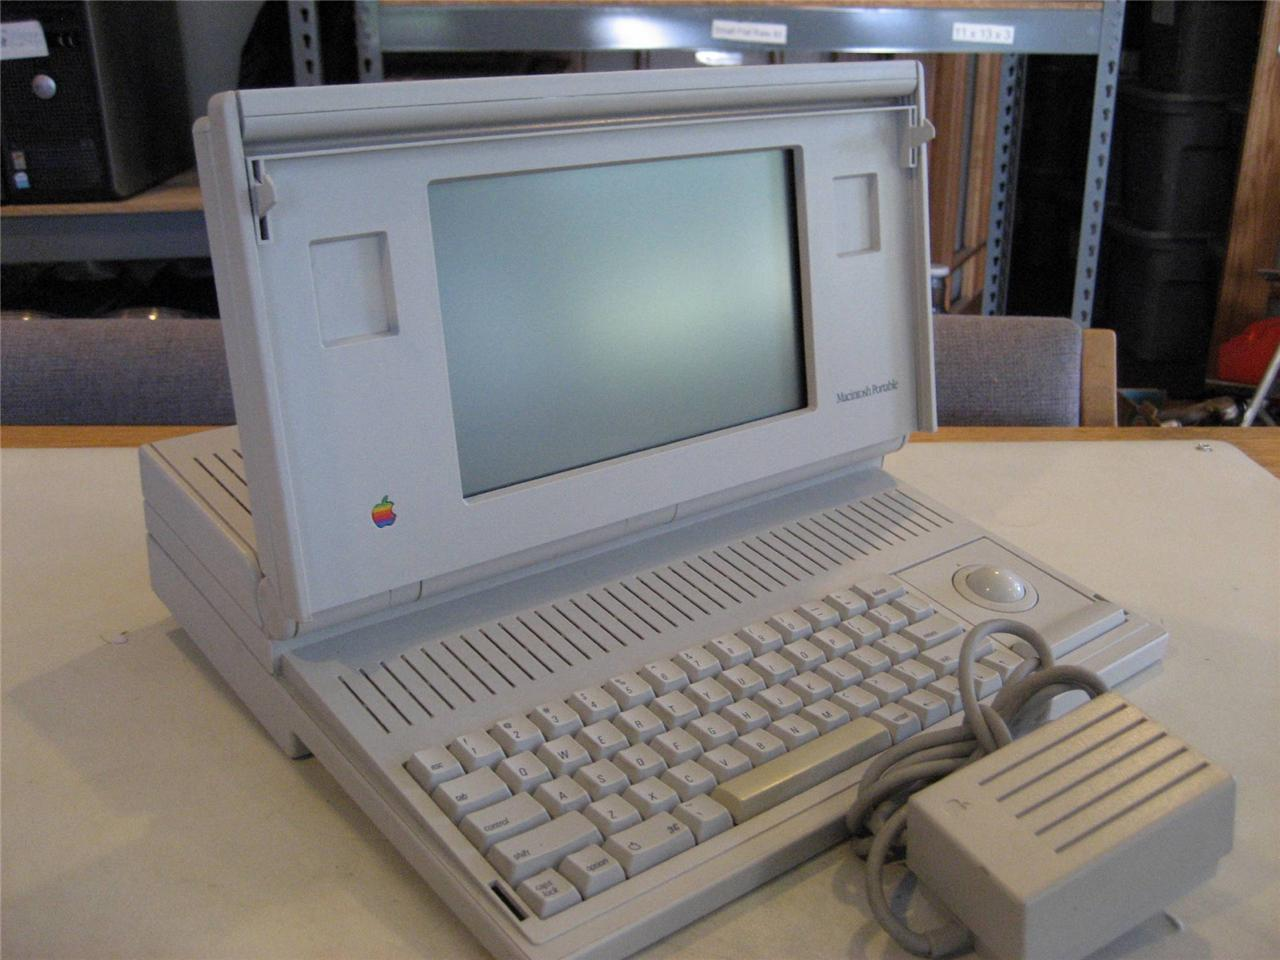 apple m5120 macintosh portable computer 4mb ram 40mb hdd as is 6491 ebay. Black Bedroom Furniture Sets. Home Design Ideas